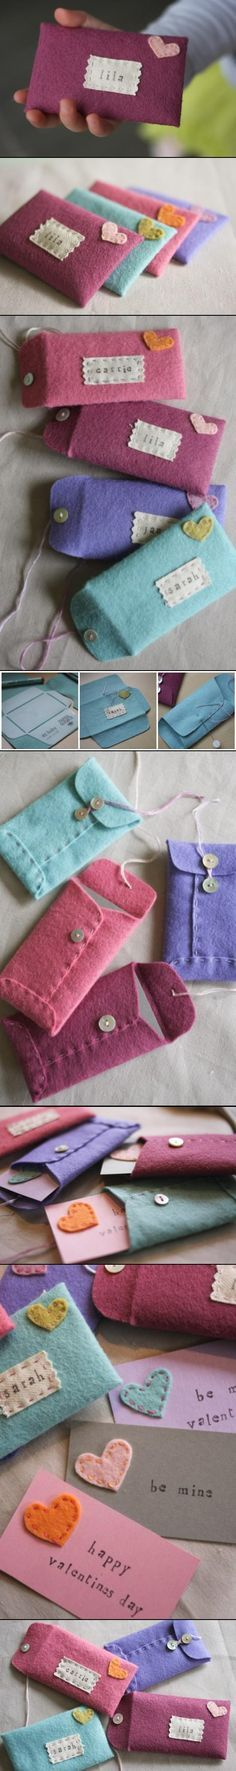 Embroidered Felt Envelopes.... awww so cute :)